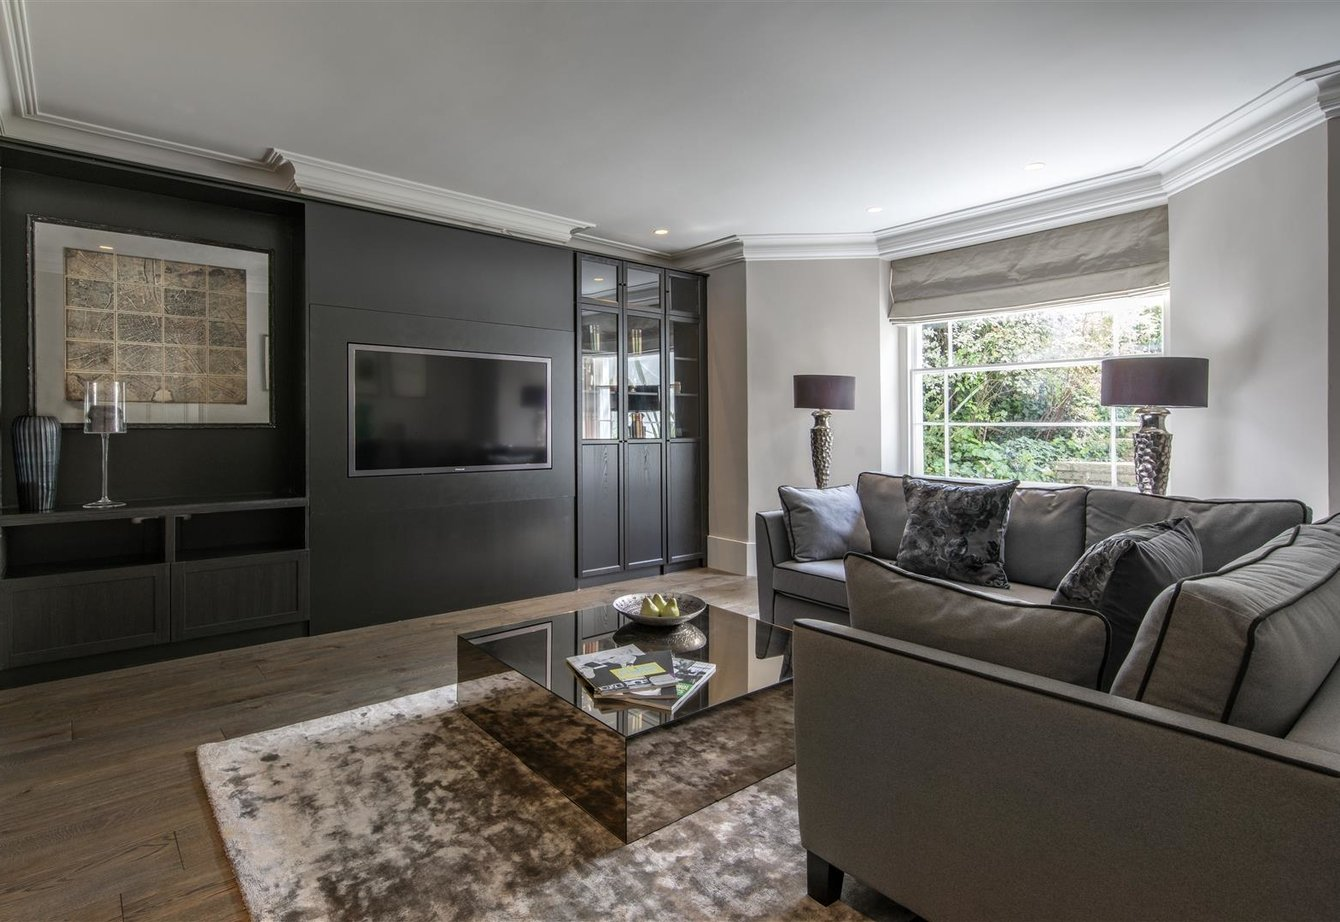 for-sale-hamilton-terrace-london-23-view8